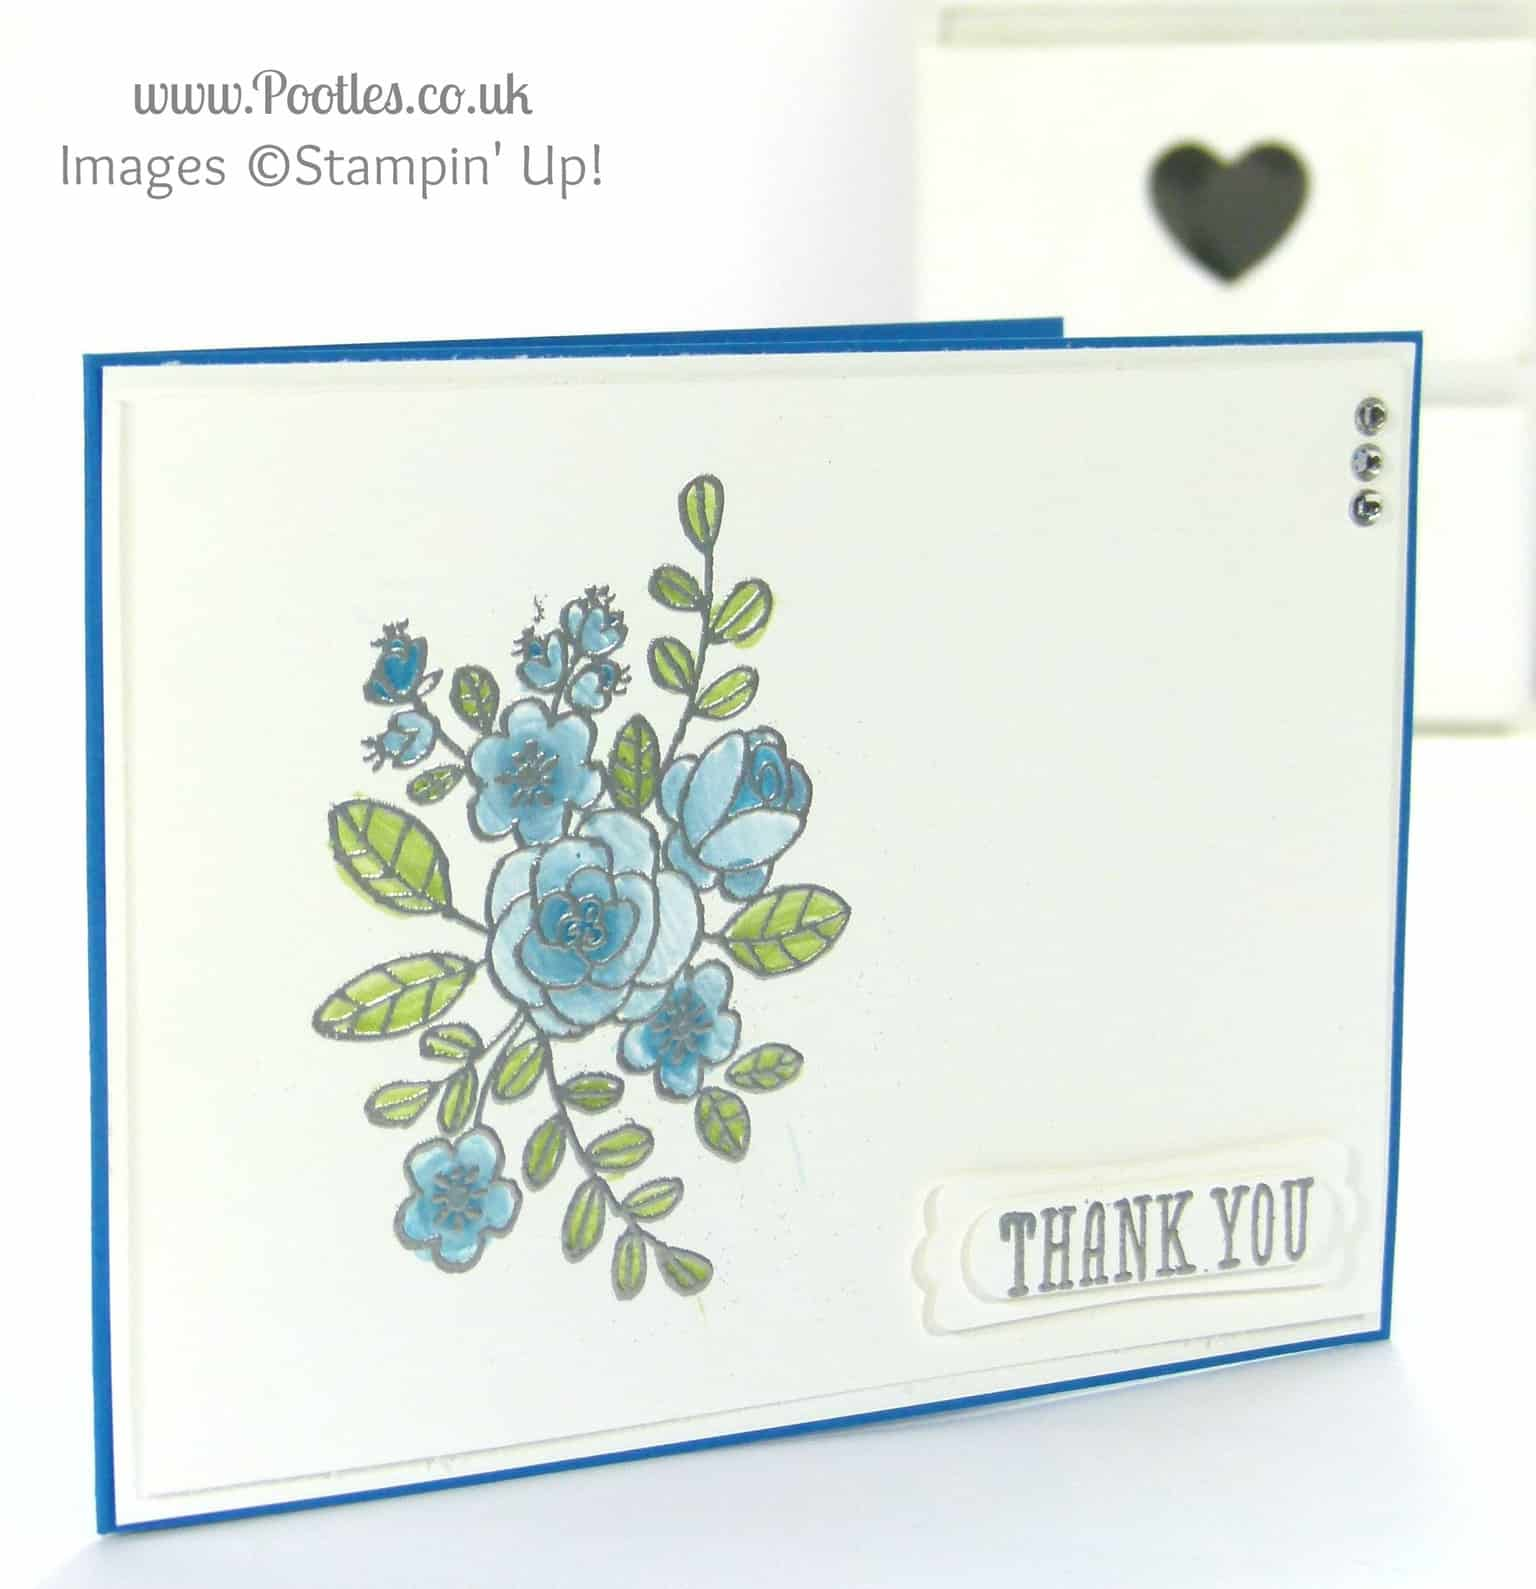 Stampin' Up! UK Demonstrator Pootles - So Very Grateful for.... Heat Embossing Of Course I am!